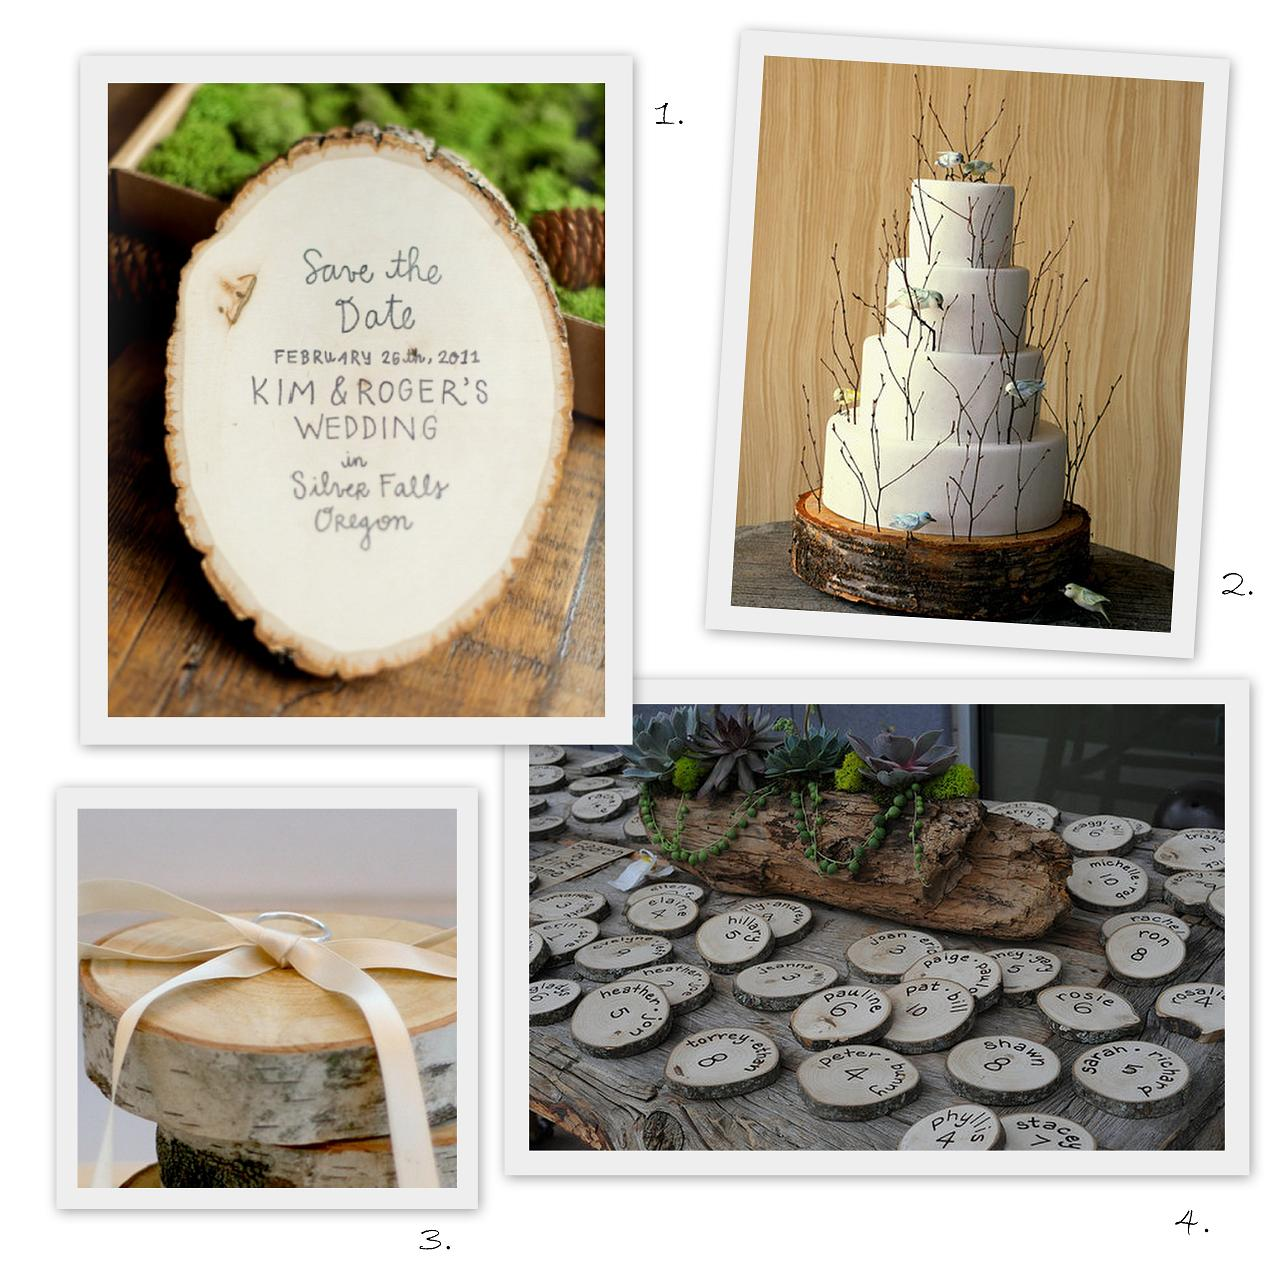 wood+slice+wedding+cake save+the+date ring+ +escort ... a muscle is damaged, dormant adult stem cells called satellite cells are ...